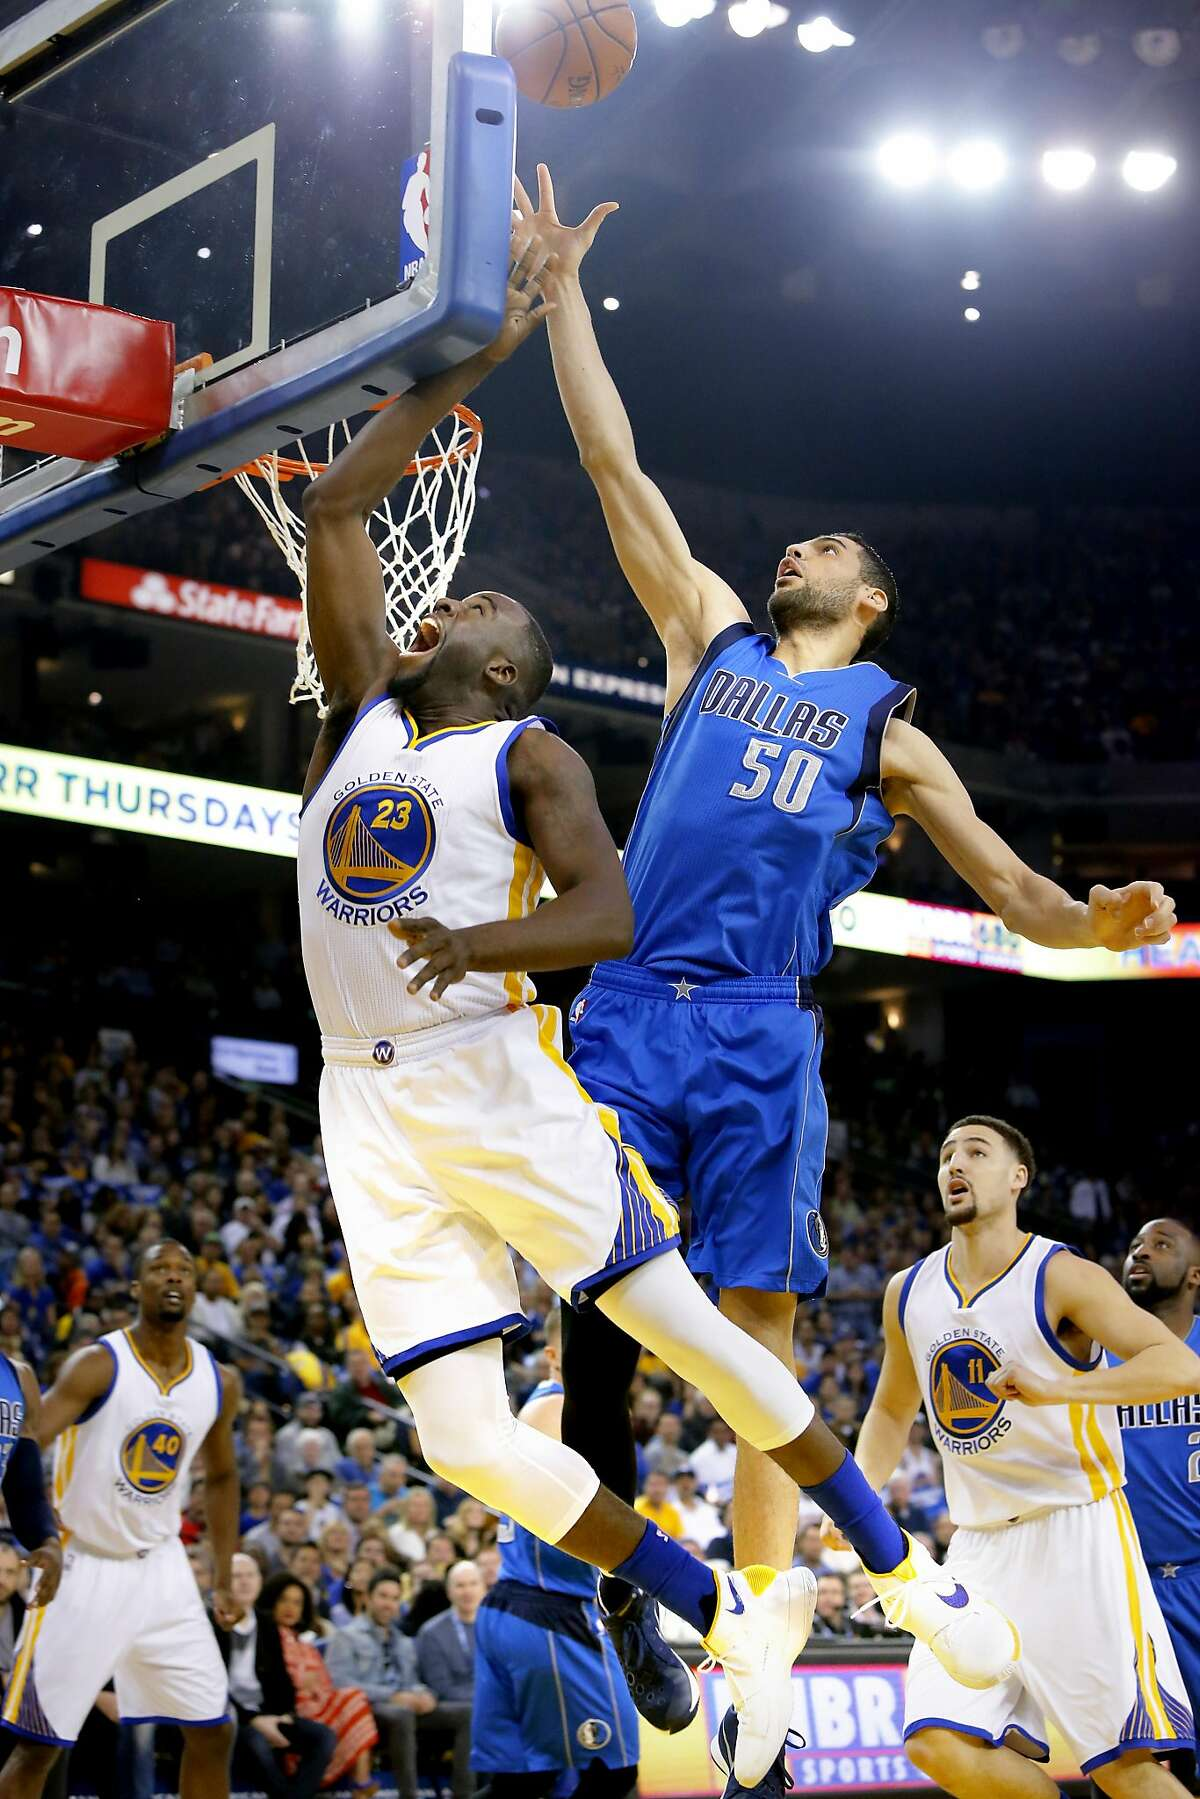 Warriors' Draymond Green, 23 drives past the Mavericks' Salah Mejri, 50 during the first half, as the Golden State Warriors take on the Dallas Mavericks at Oracle Arena in Oakland, California, on Fri. March 25, 2016.